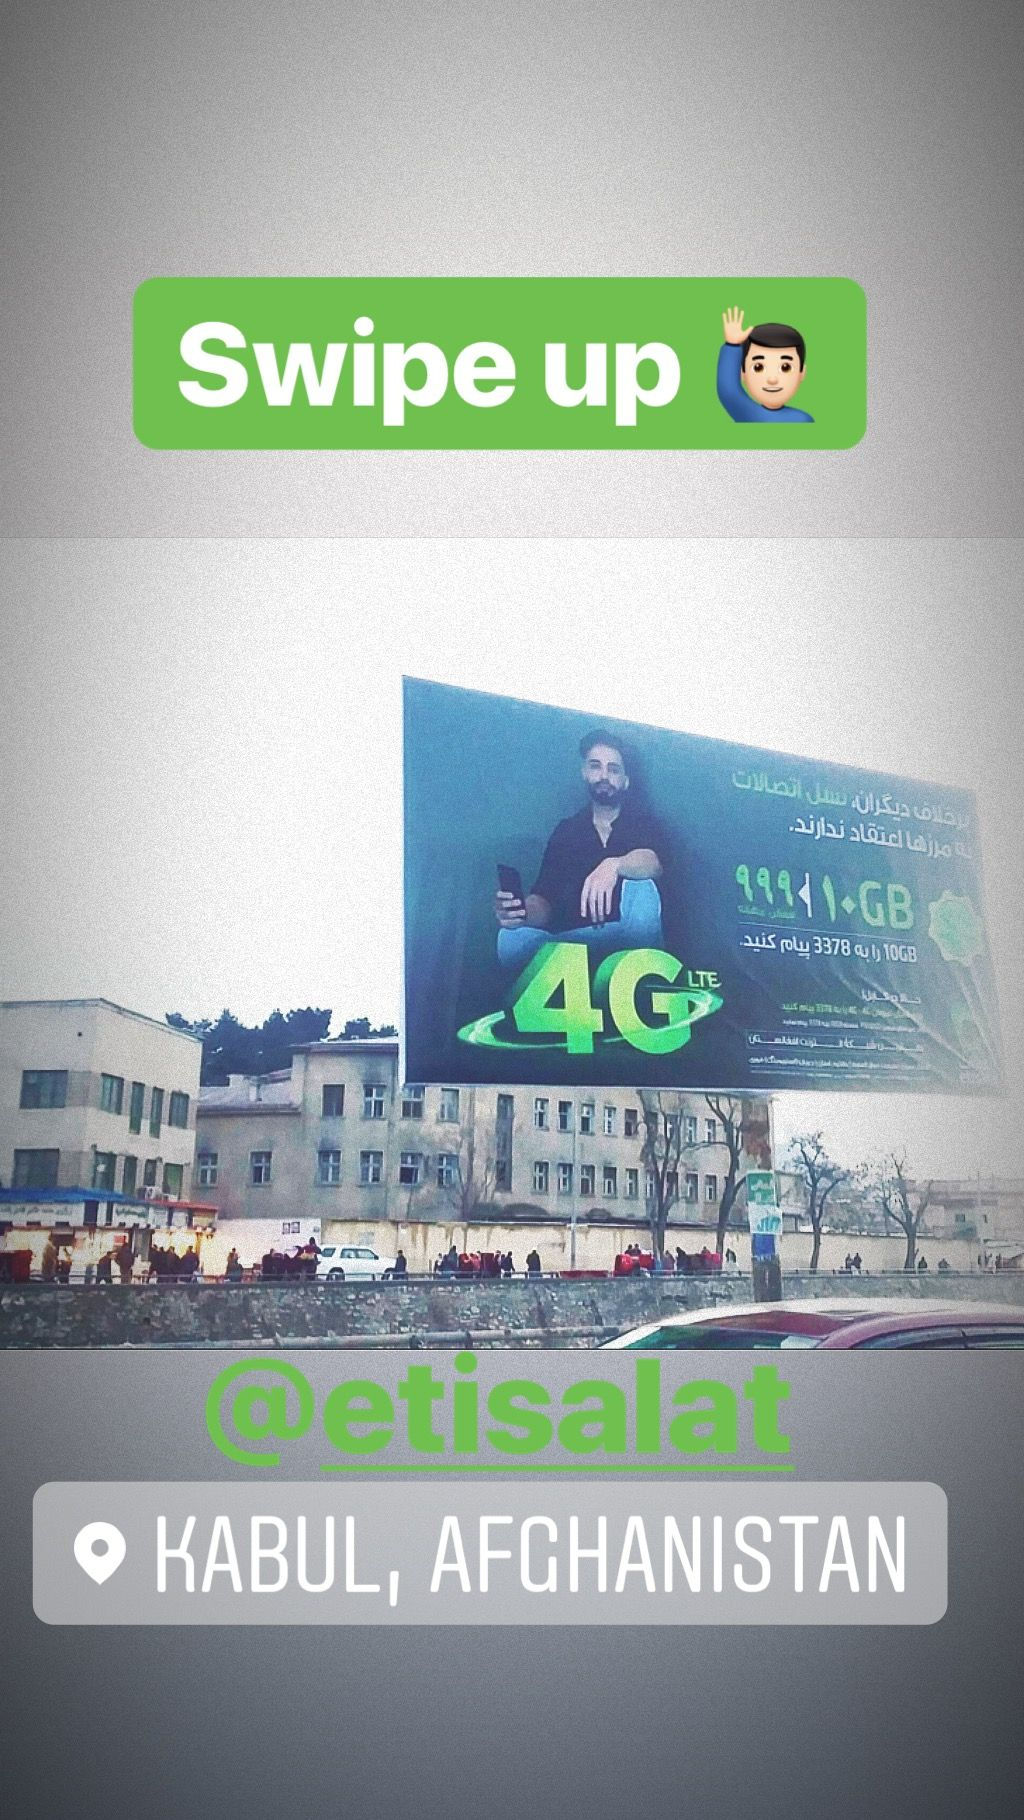 Afghan actor Humayoon Shams Khan in Etisalat billboard